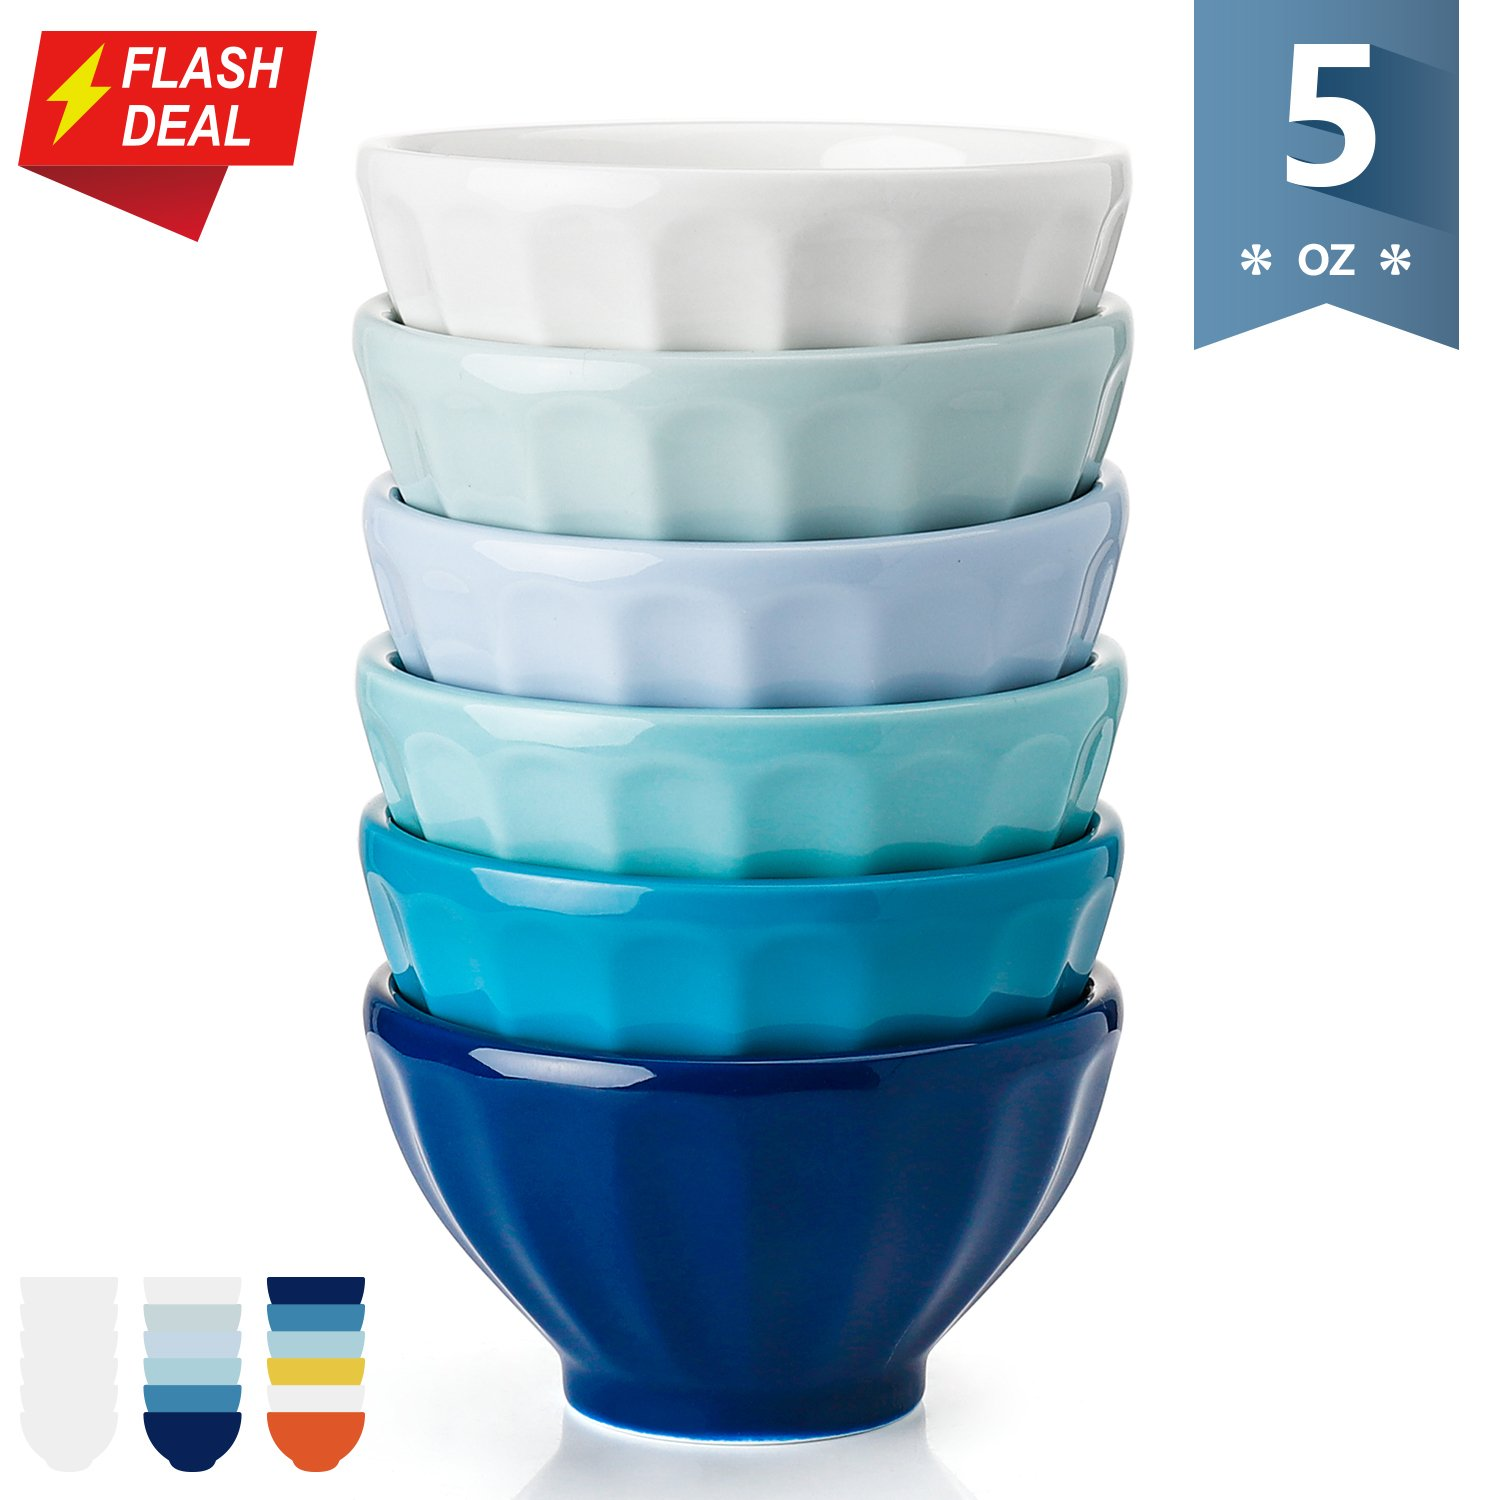 Sweese 1125 Porcelain Fluted Bowls - 5 Ounce for Ice Cream Dessert, Dipping Sauces, Small Side Dishes - Set of 6, Cool Assorted Colors by Sweese (Image #1)